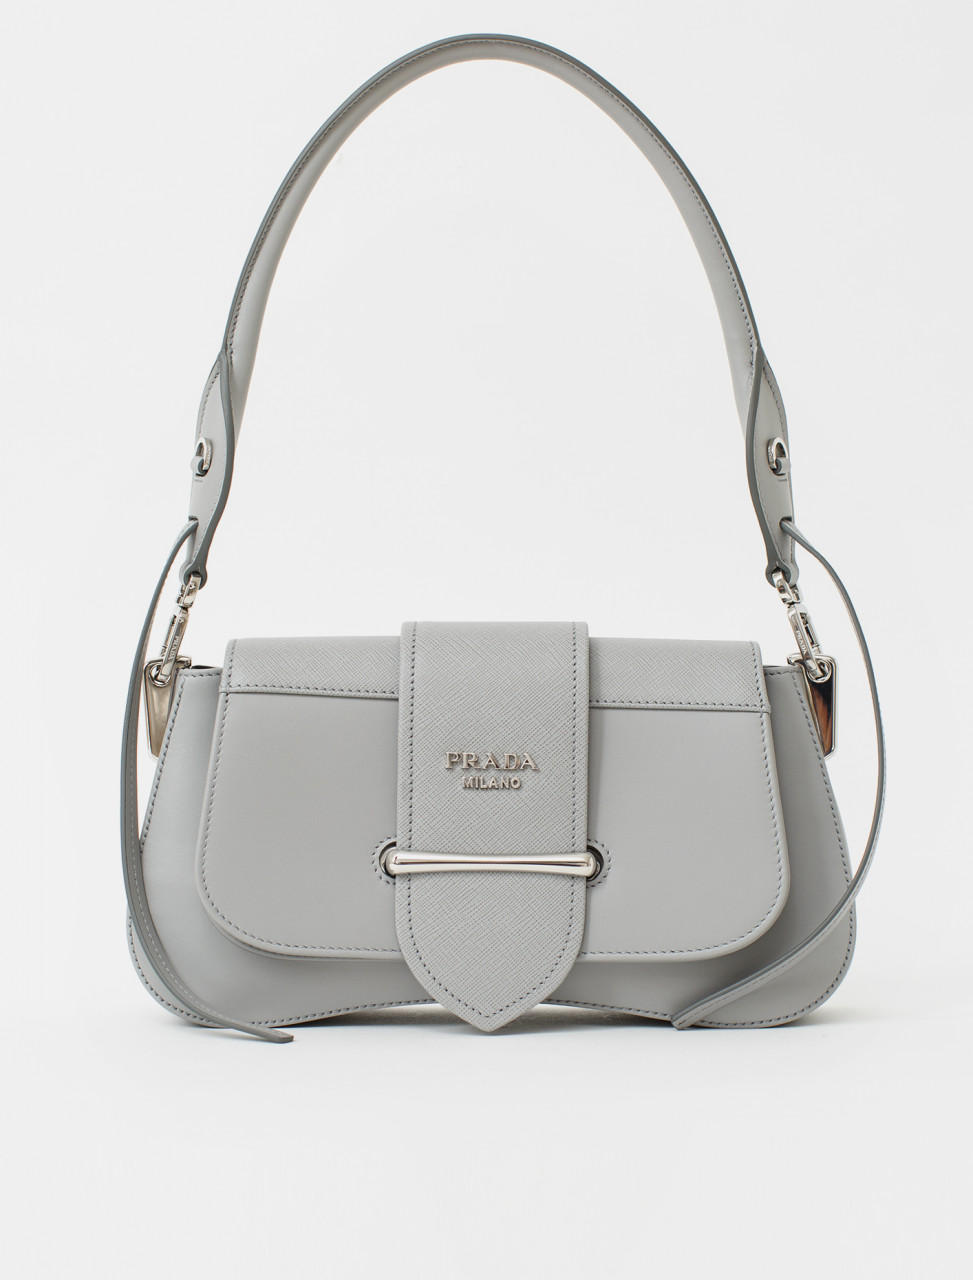 Saffiano Sidonie Handbag in Cloud